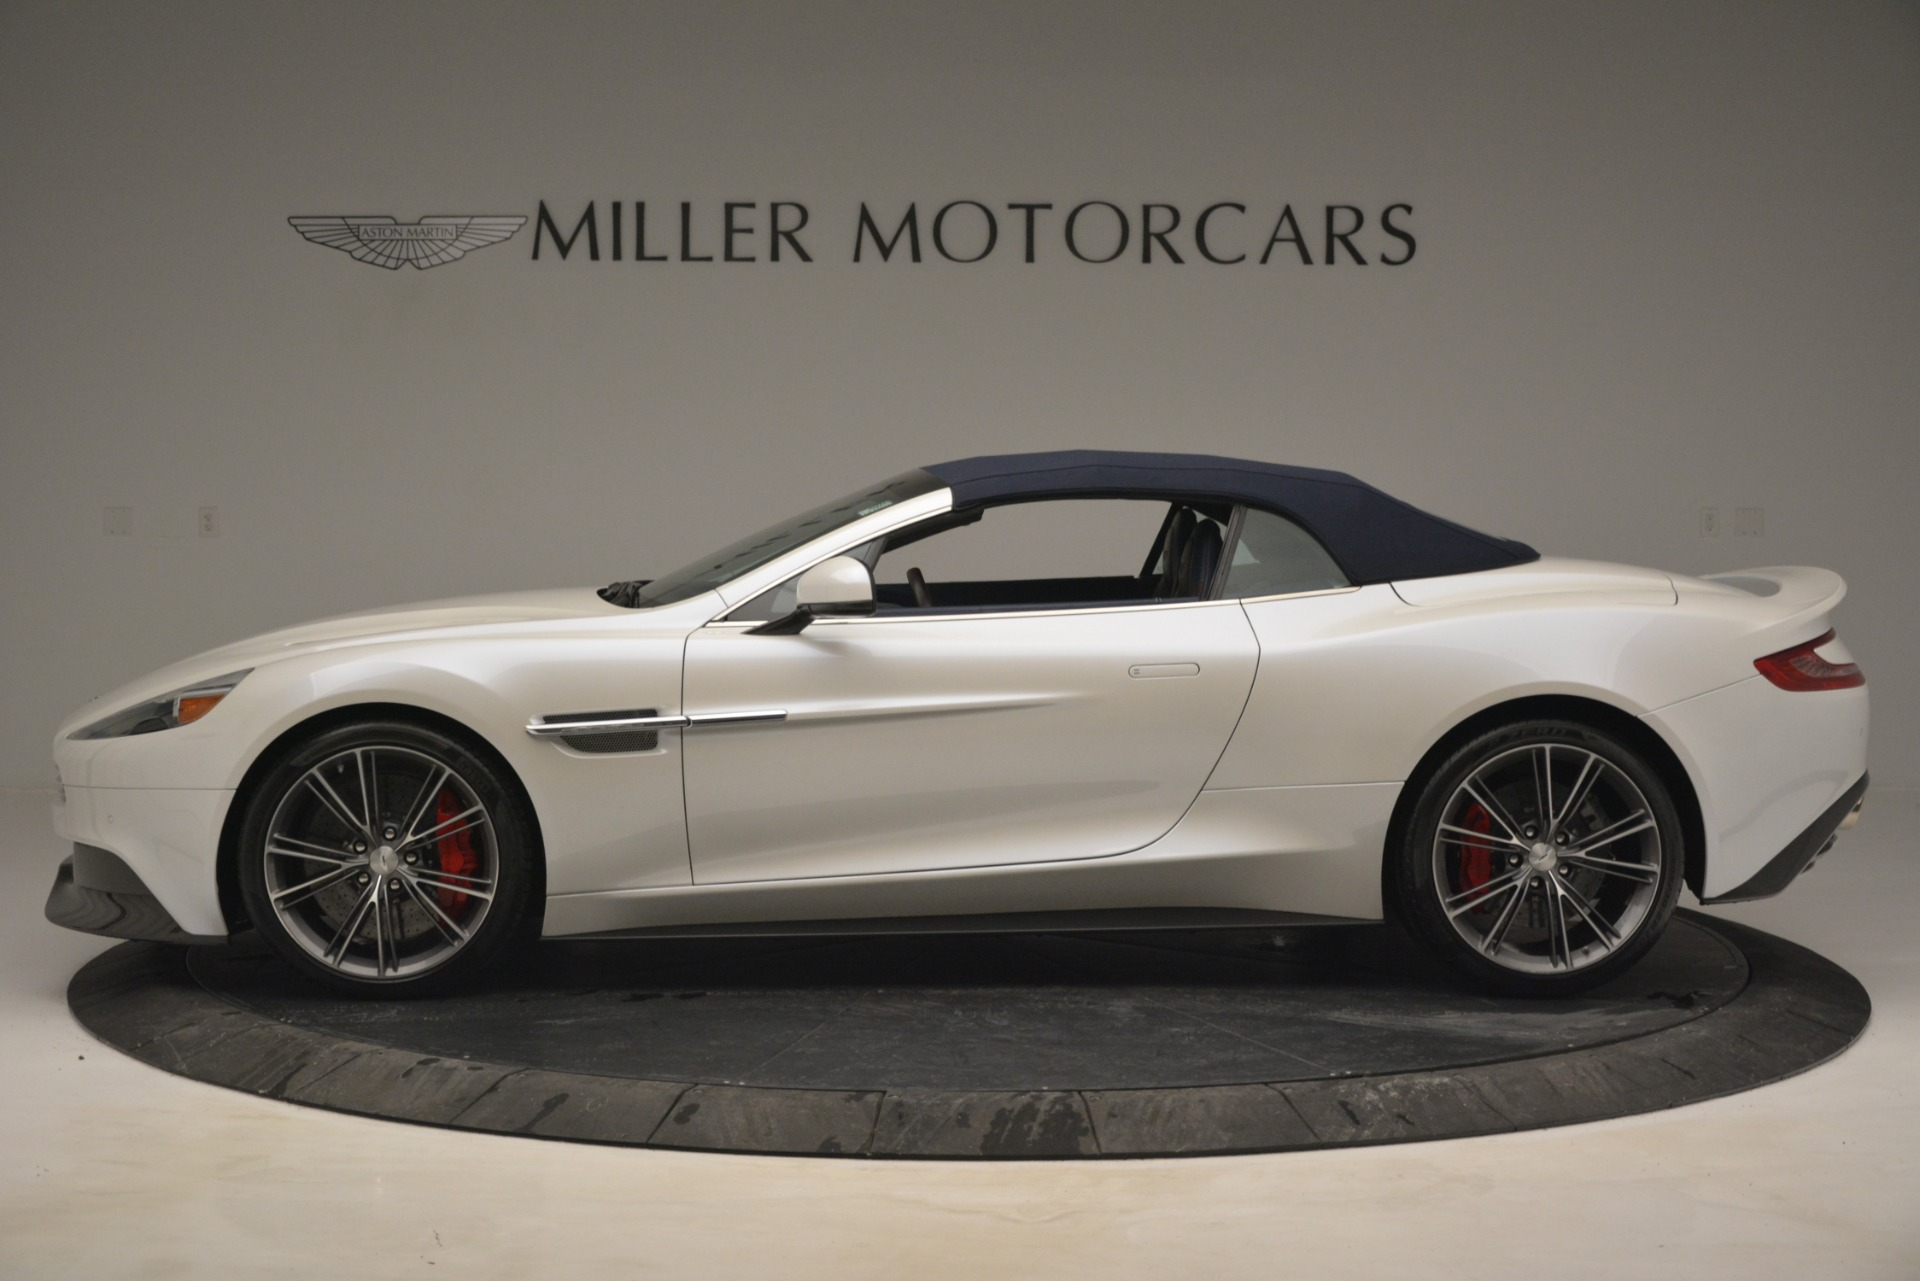 Used 2015 Aston Martin Vanquish Convertible For Sale In Westport, CT 2982_p16